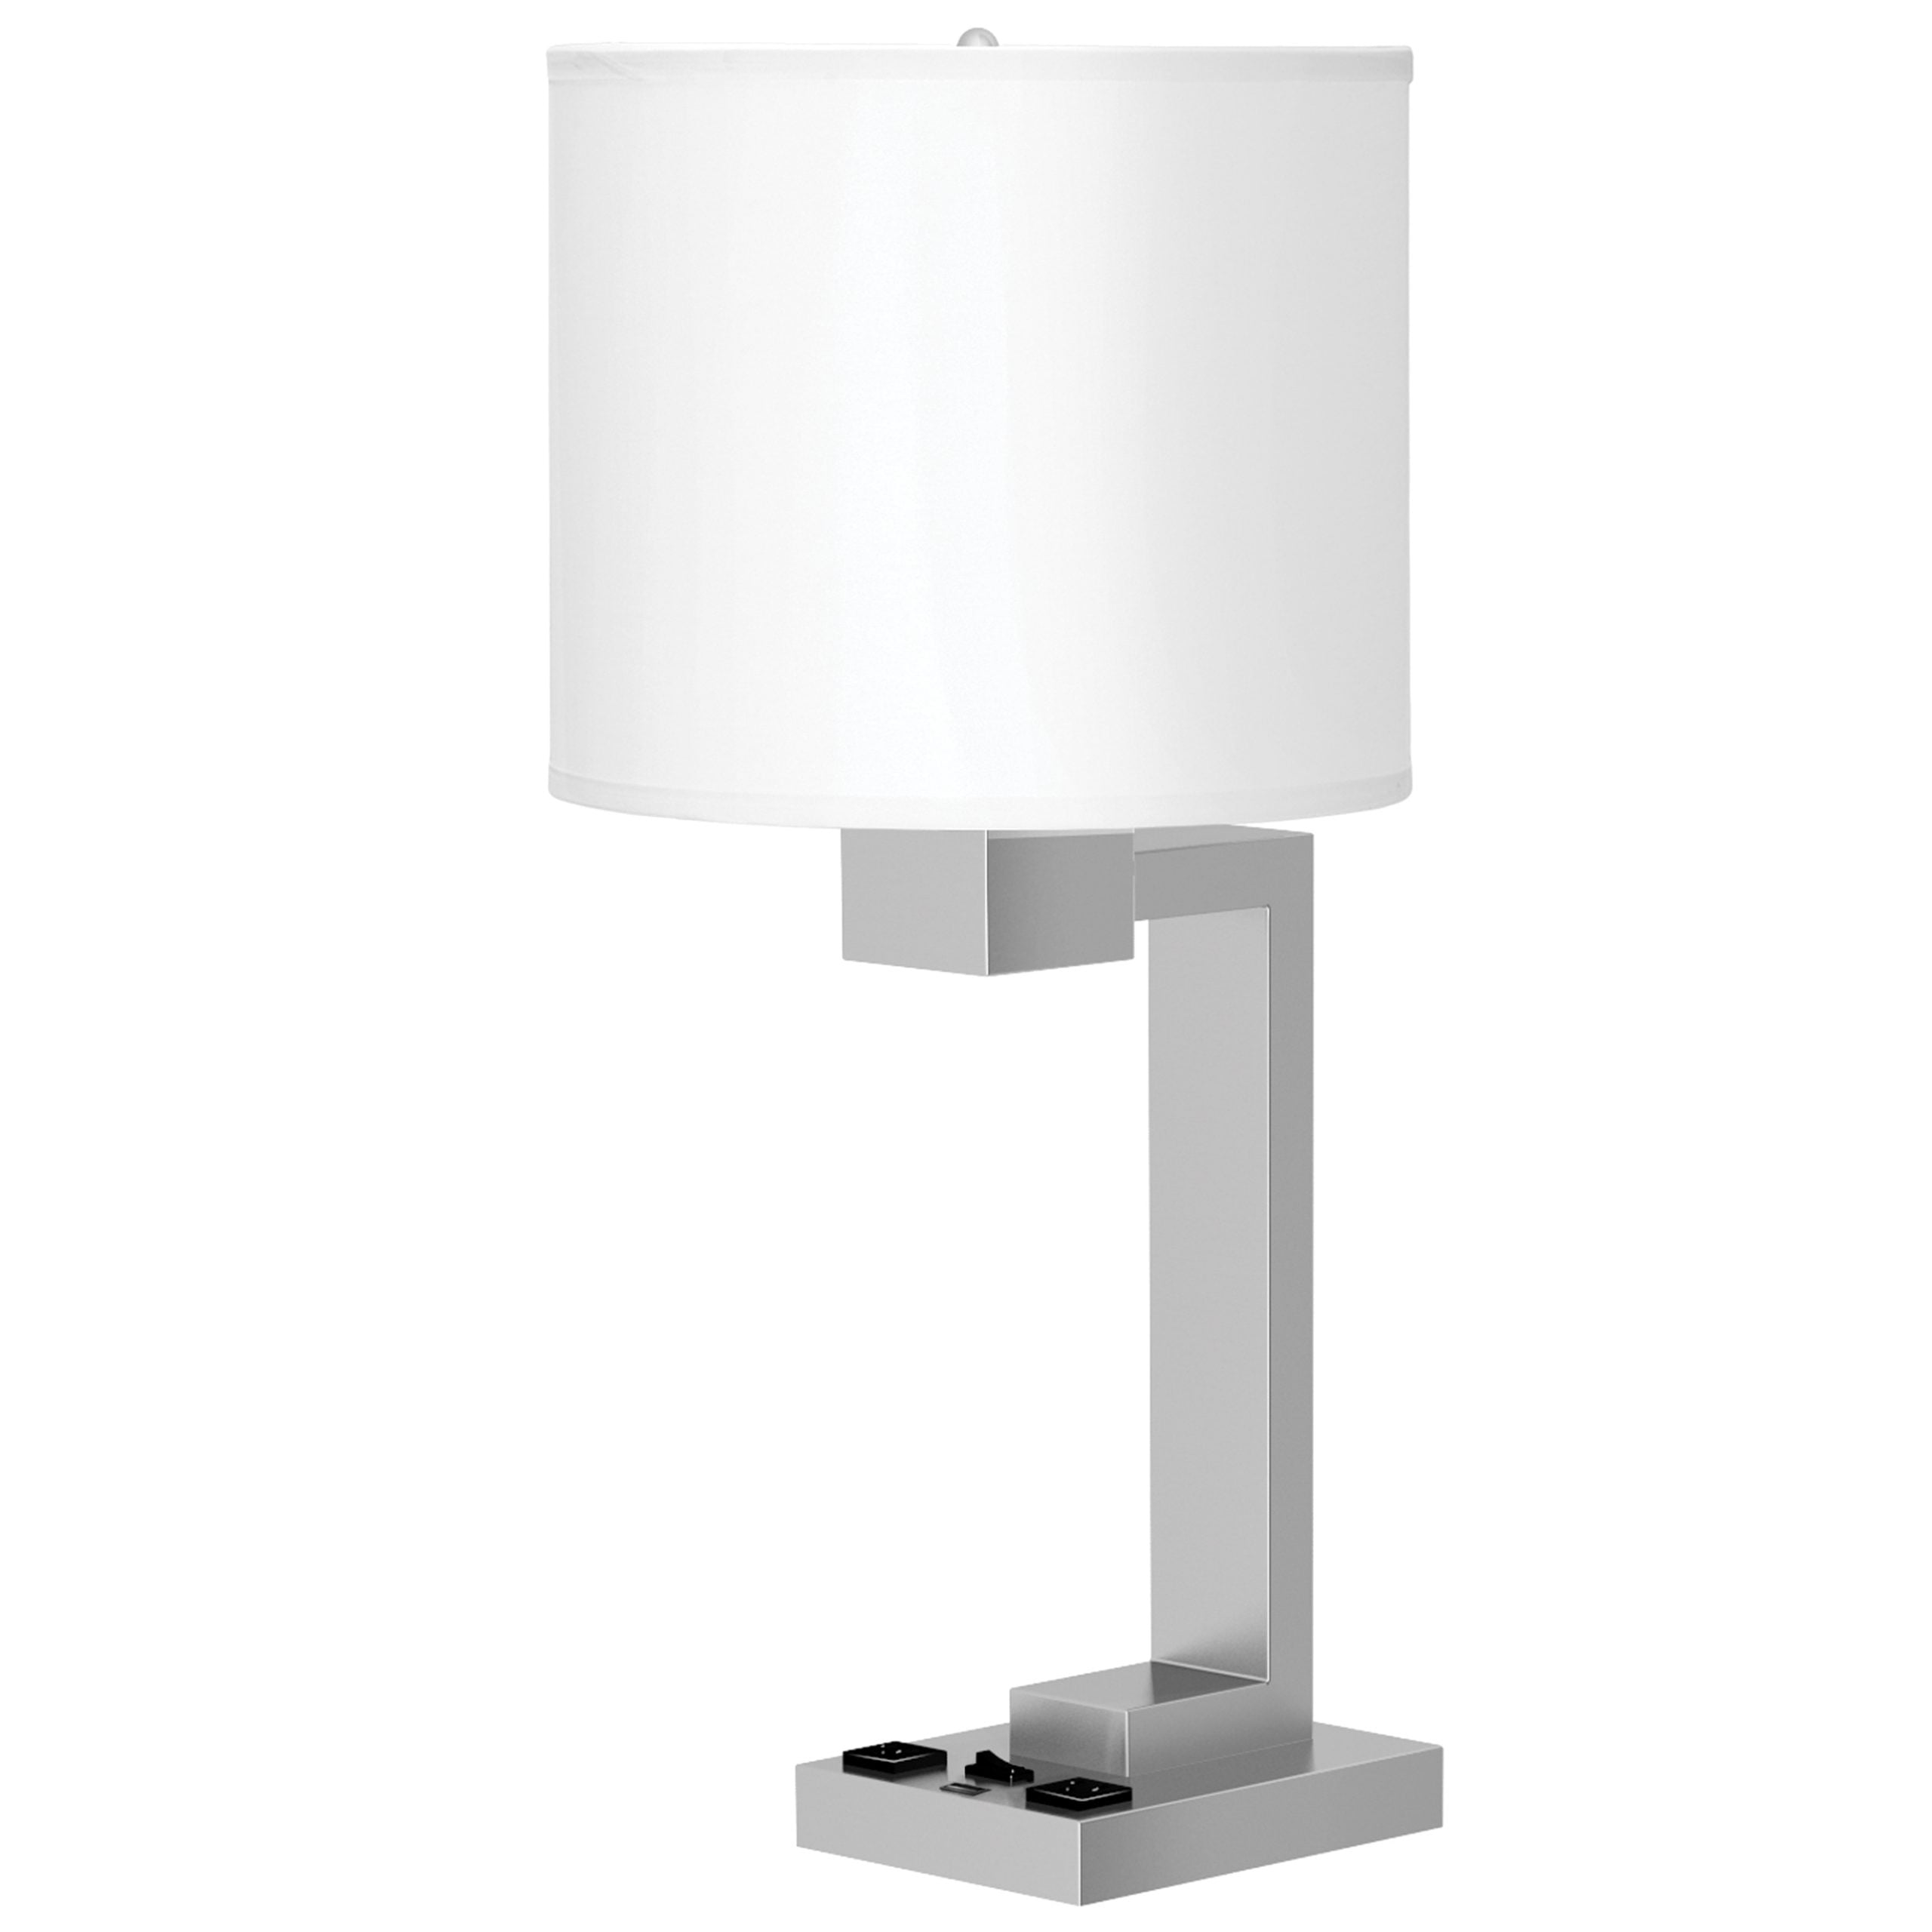 Truly Yours Single Table Lamp with 2 Outlets & 1 USB